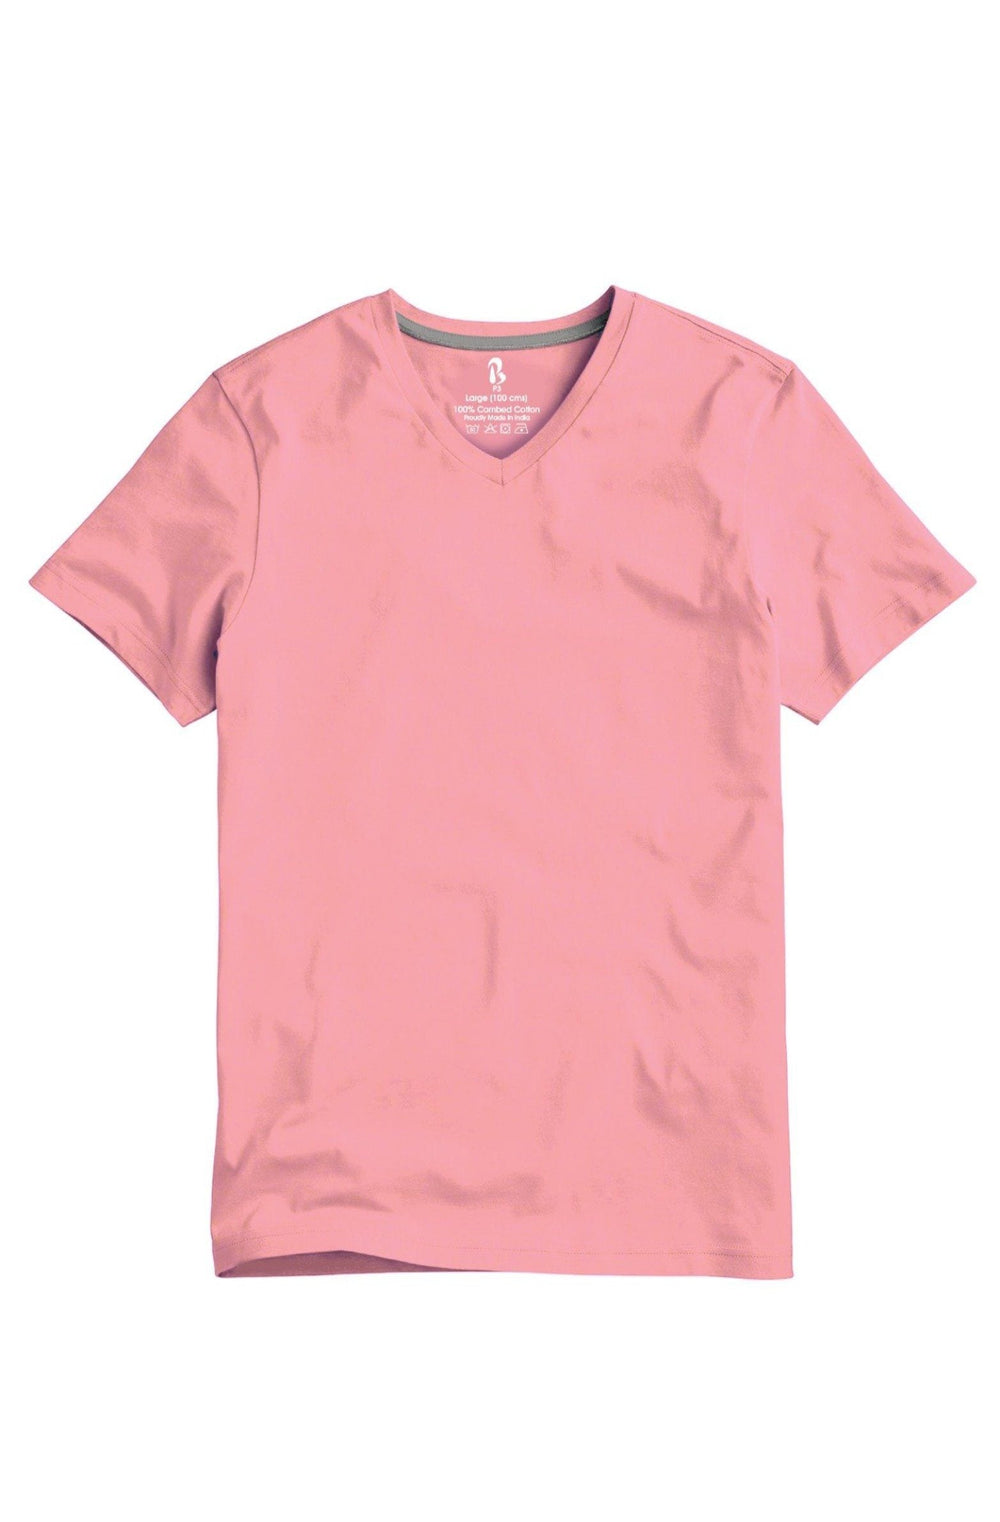 Floss Pink V-Neck Tee (MRP inclusive of all taxes) V Neck T-Shirt P3